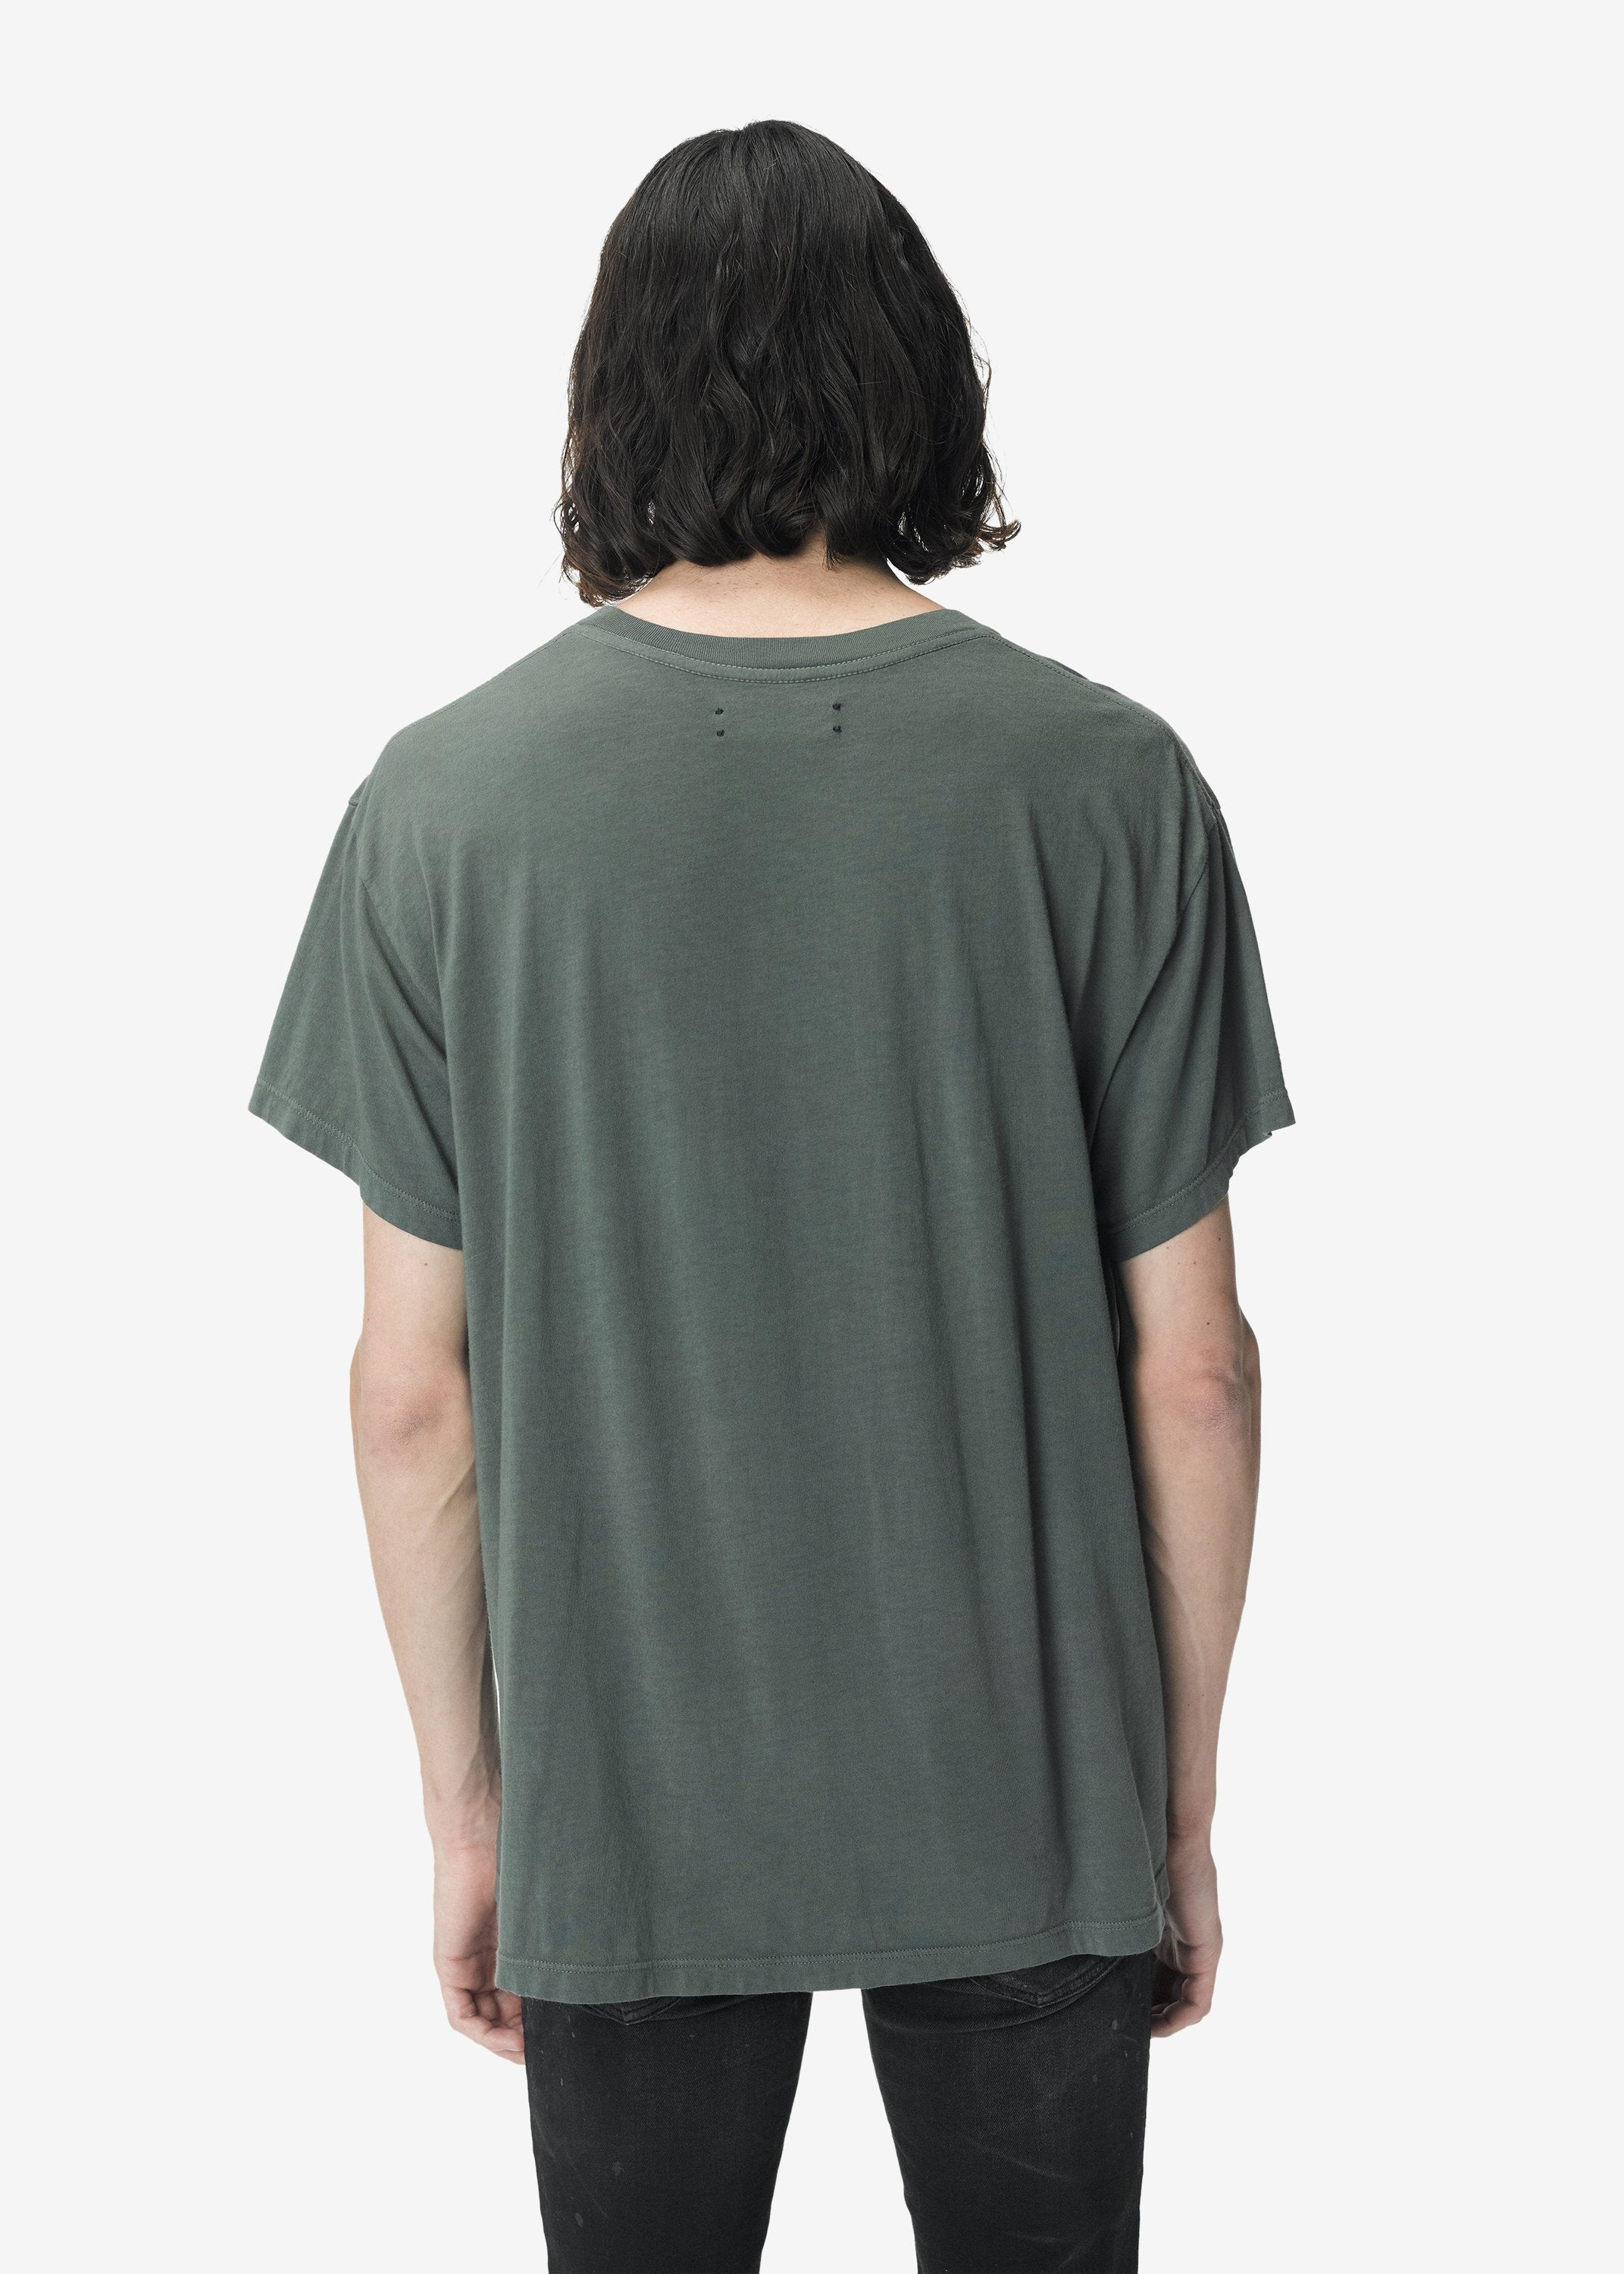 college-amiri-tee-military-green-image-4